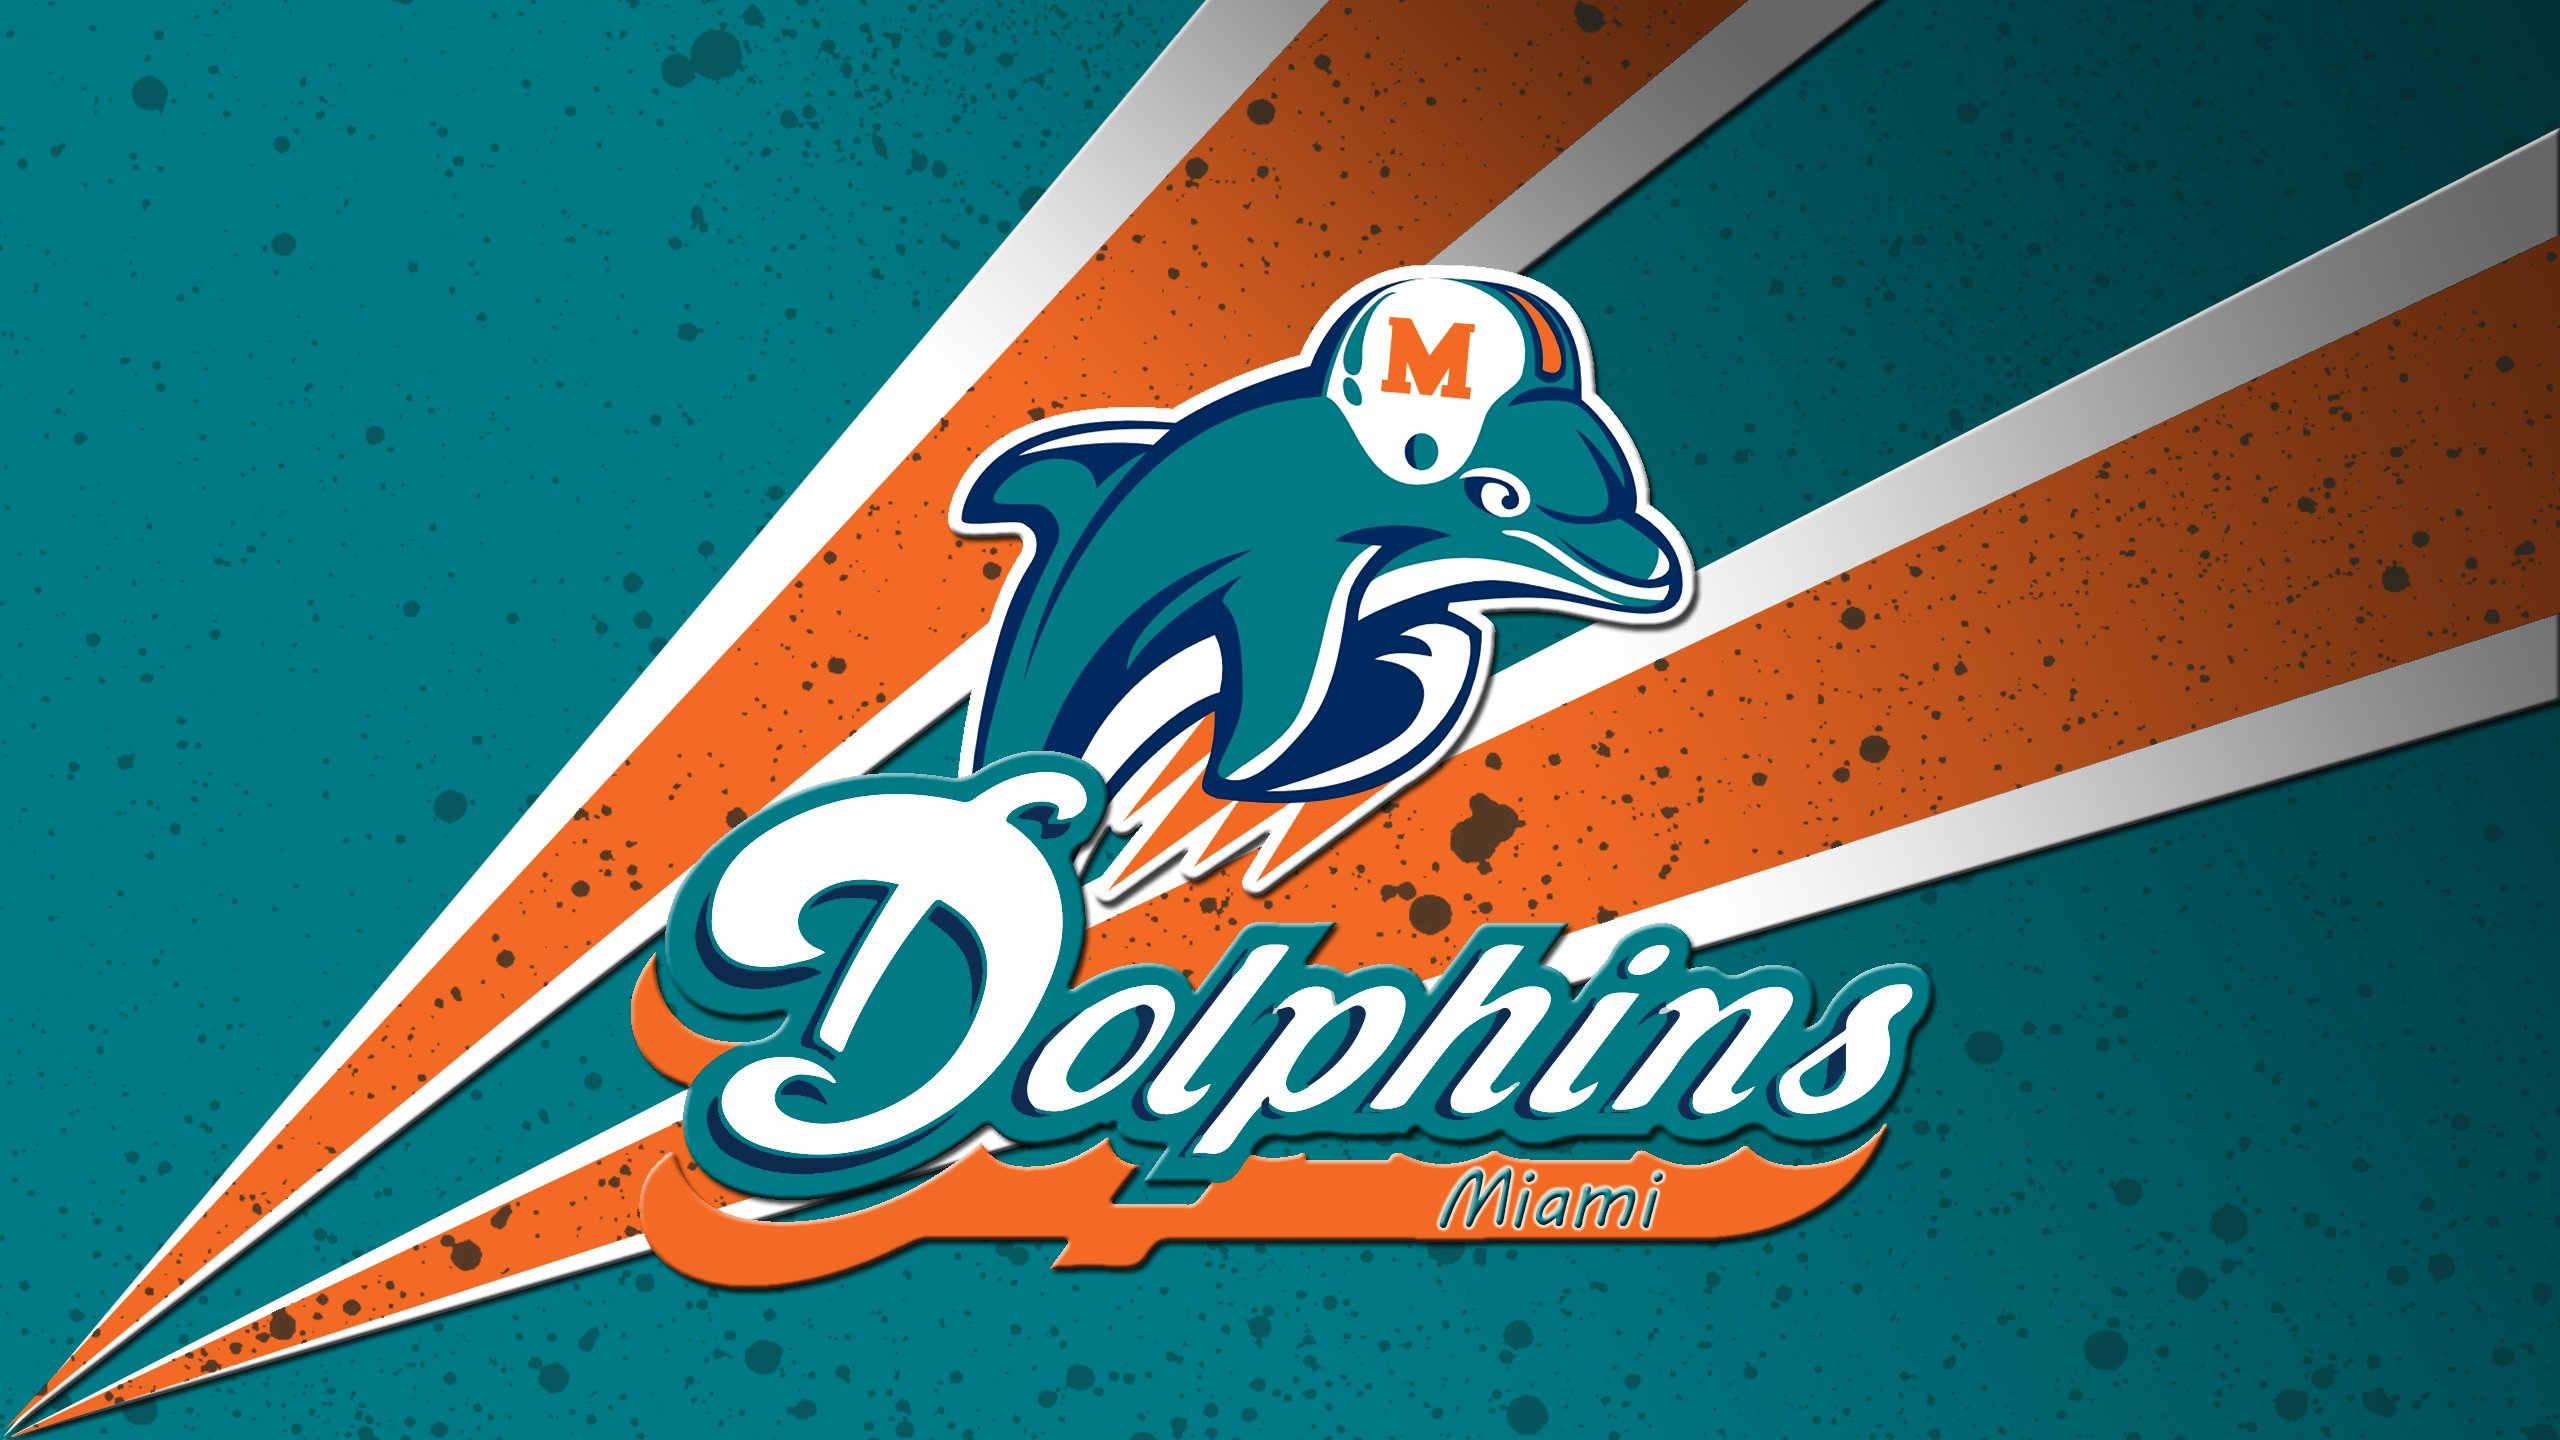 Miami Dolphins by BeAware8 on deviantART 2560x1440